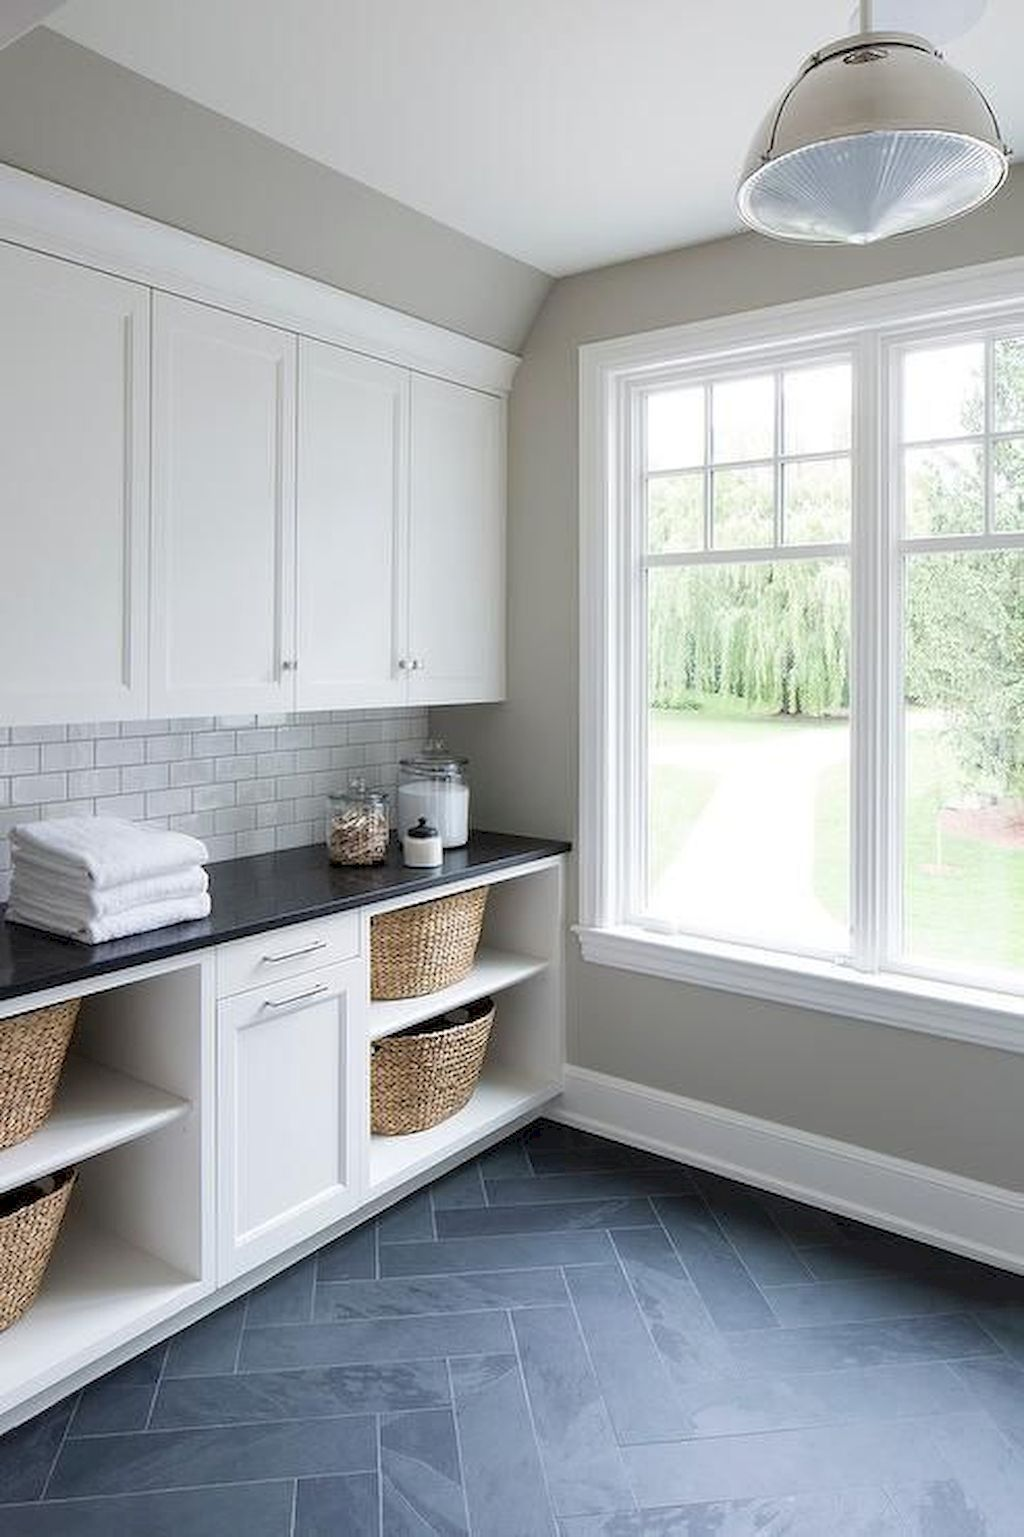 10x10 Laundry Room Layout: Pin By My Blossoming Life On Laundry Room